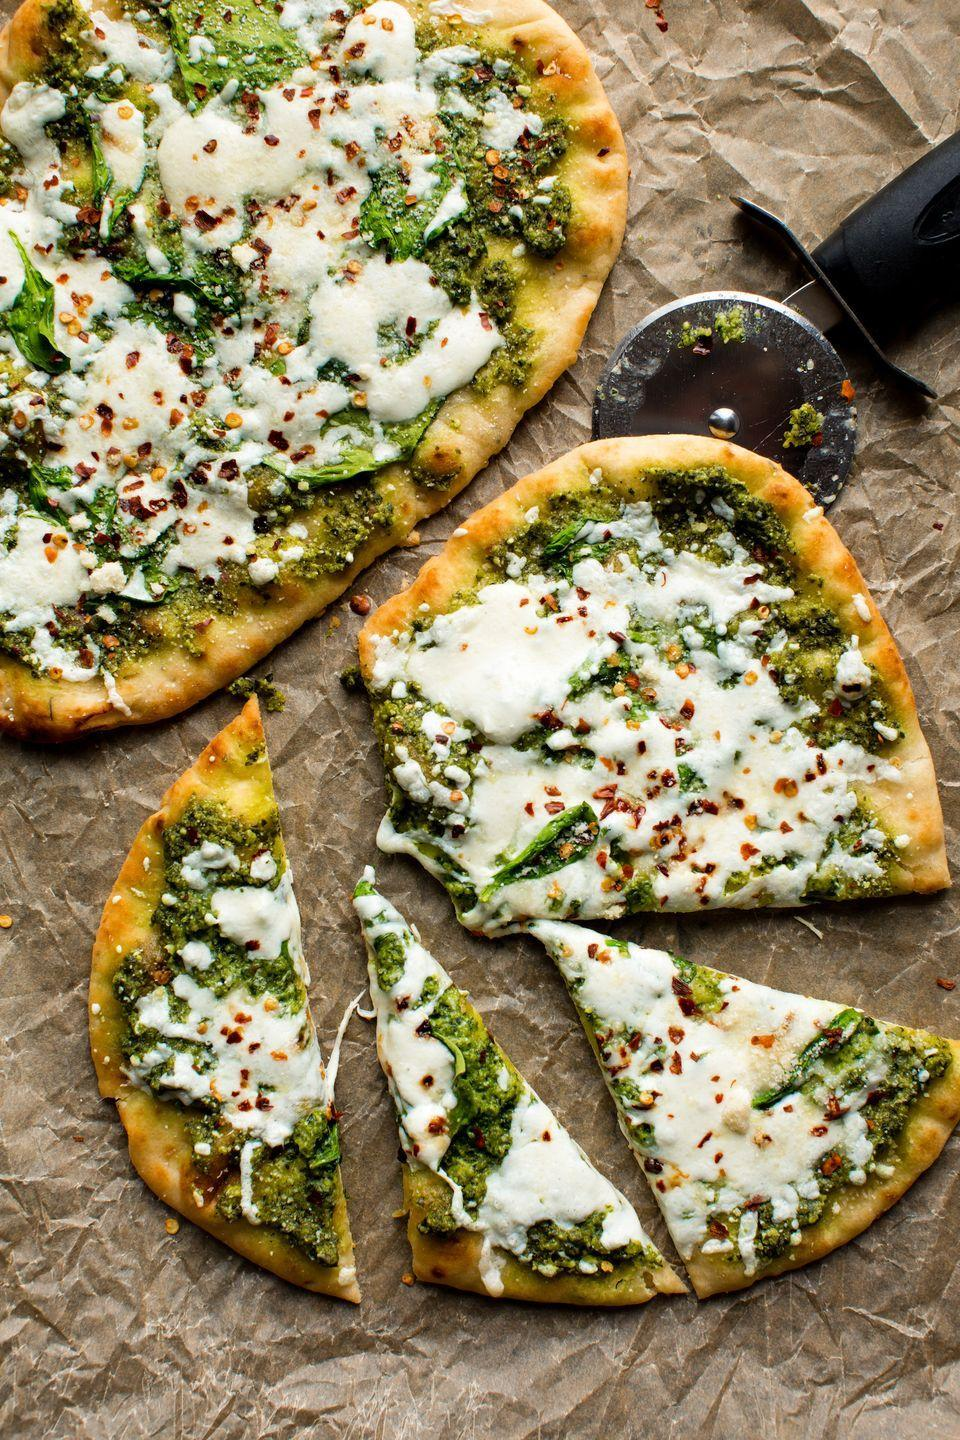 "<p>In a hurry? I like to use store-bought naan to make a super quick meal. Top with pesto and mozzarella with a little shake of red pepper flakes to heat things up!</p><p>Get the recipe from <a href=""https://www.delish.com/cooking/recipe-ideas/recipes/a53449/cheesy-spinach-pesto-flatbread-recipe/"" rel=""nofollow noopener"" target=""_blank"" data-ylk=""slk:Delish"" class=""link rapid-noclick-resp"">Delish</a>.</p>"